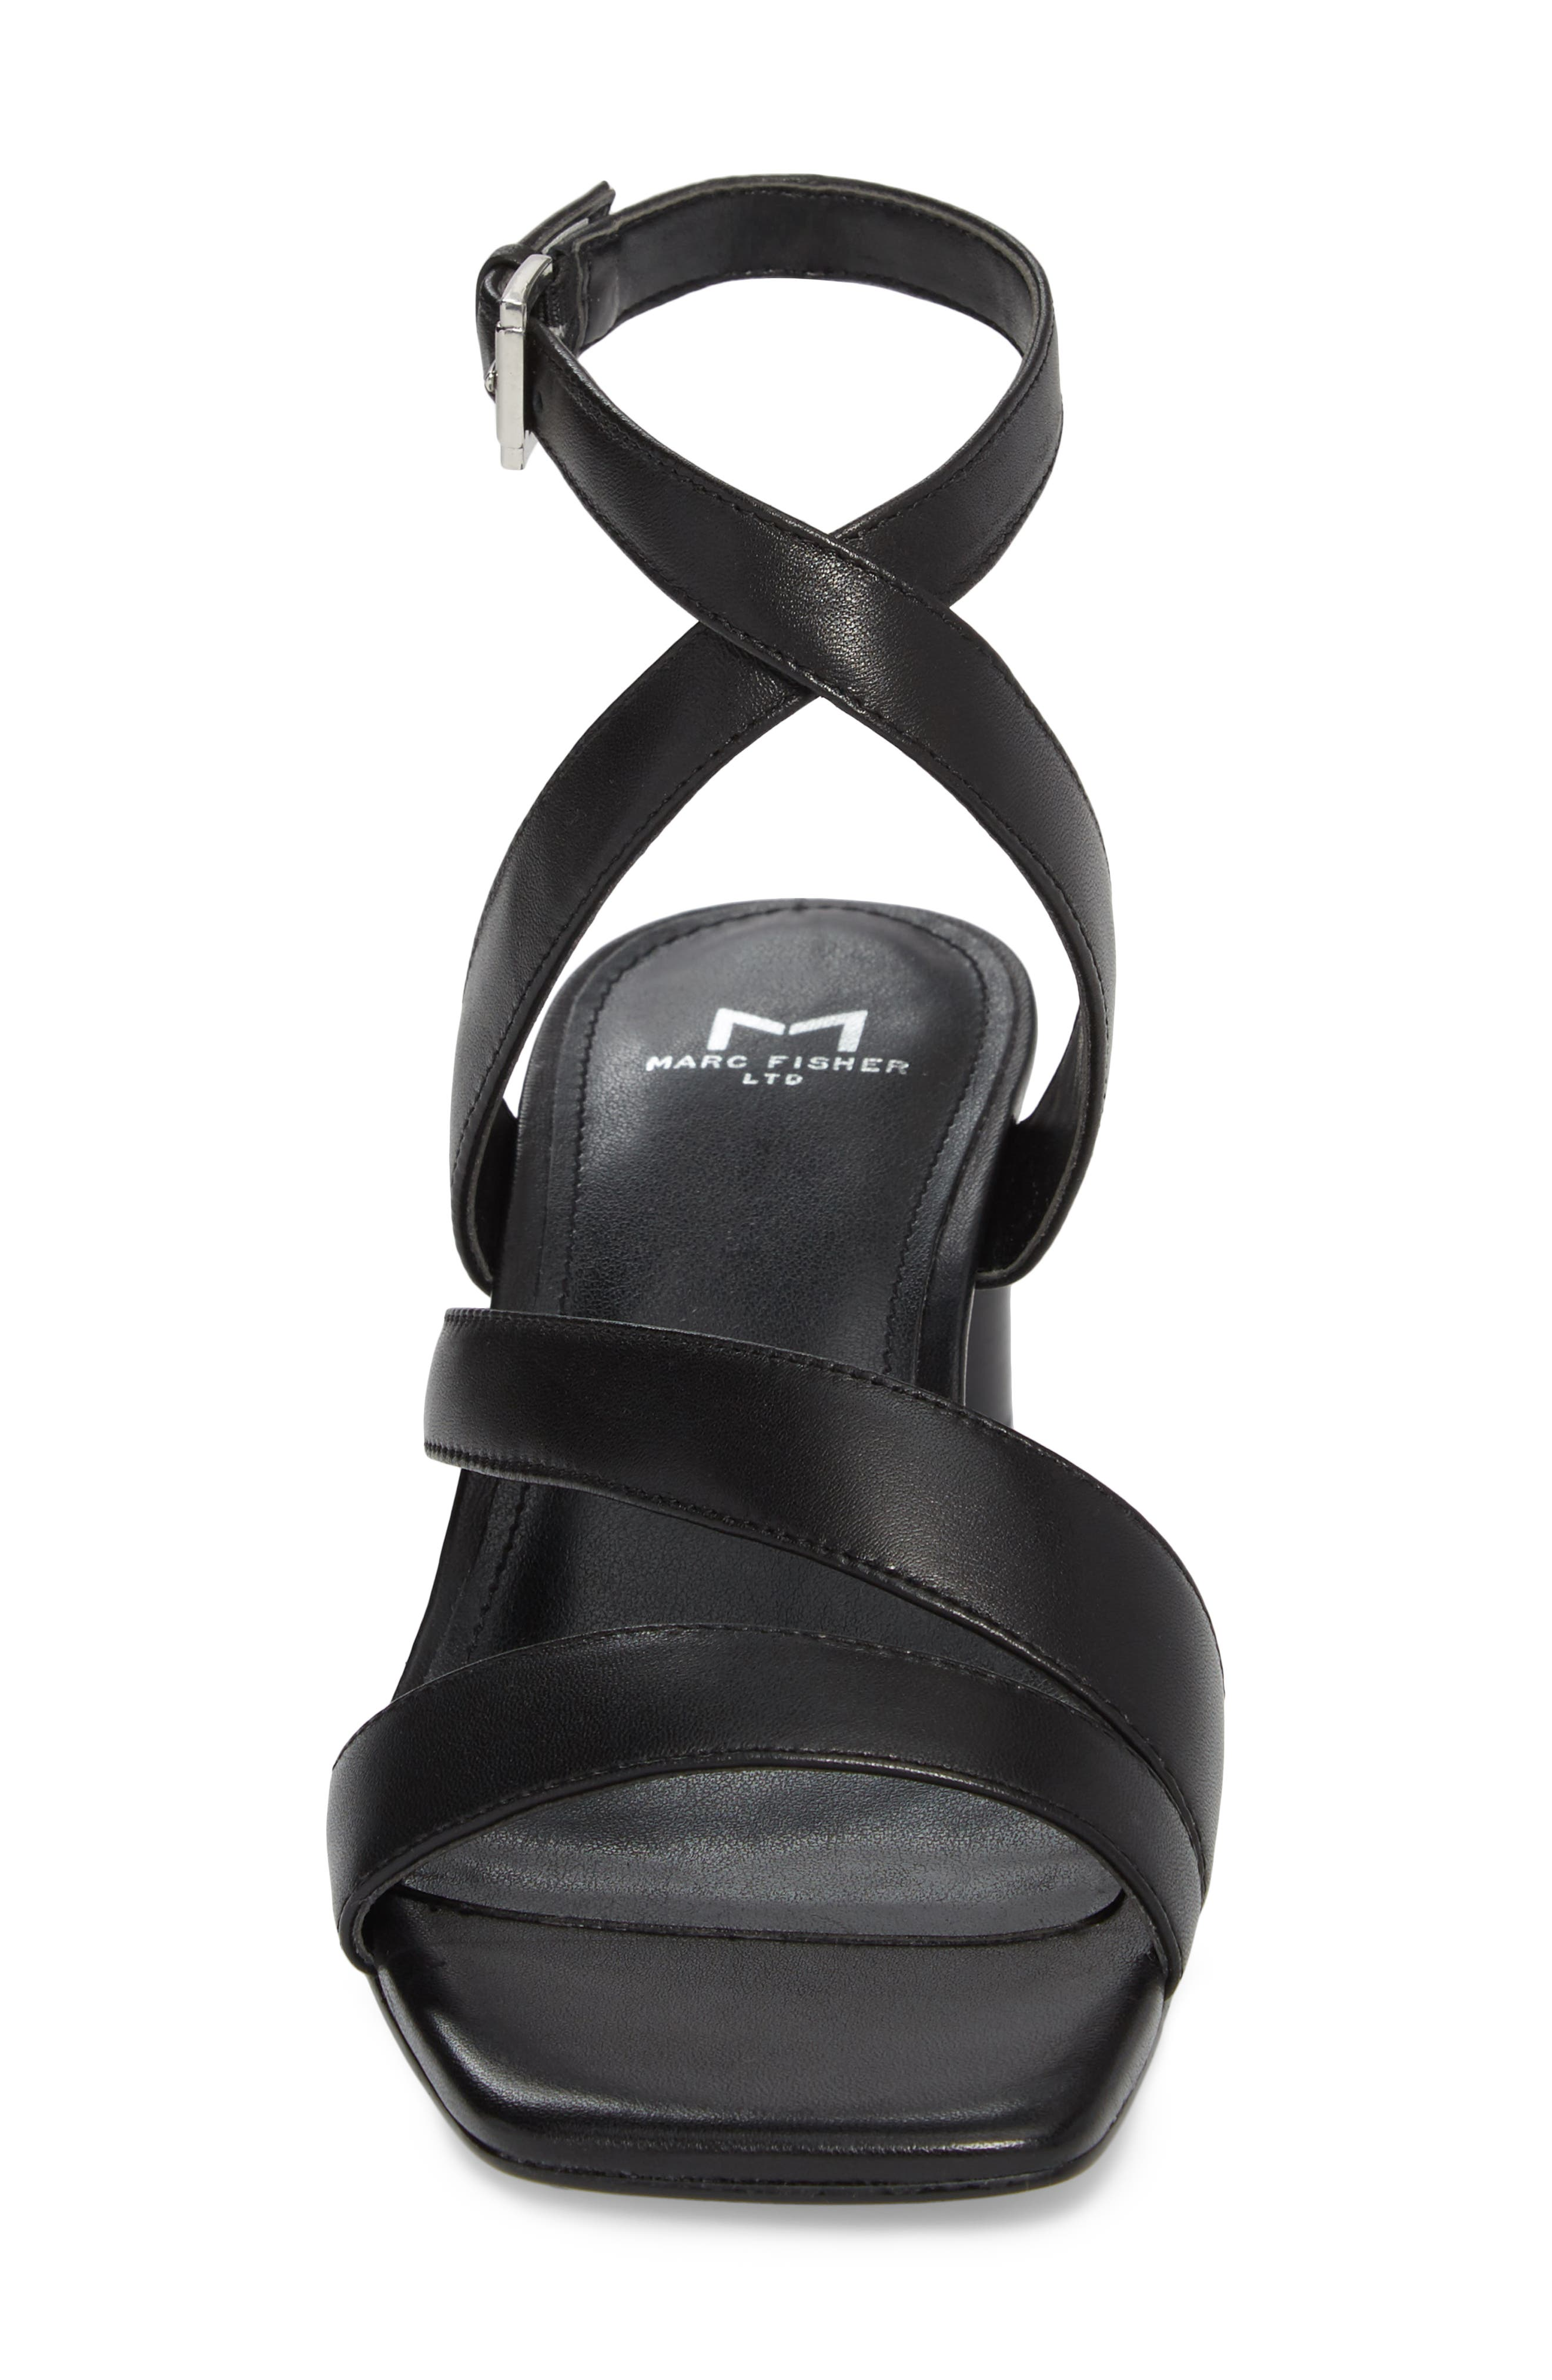 Marc Fischer LTD Idana Strappy Sandal,                             Alternate thumbnail 4, color,                             001